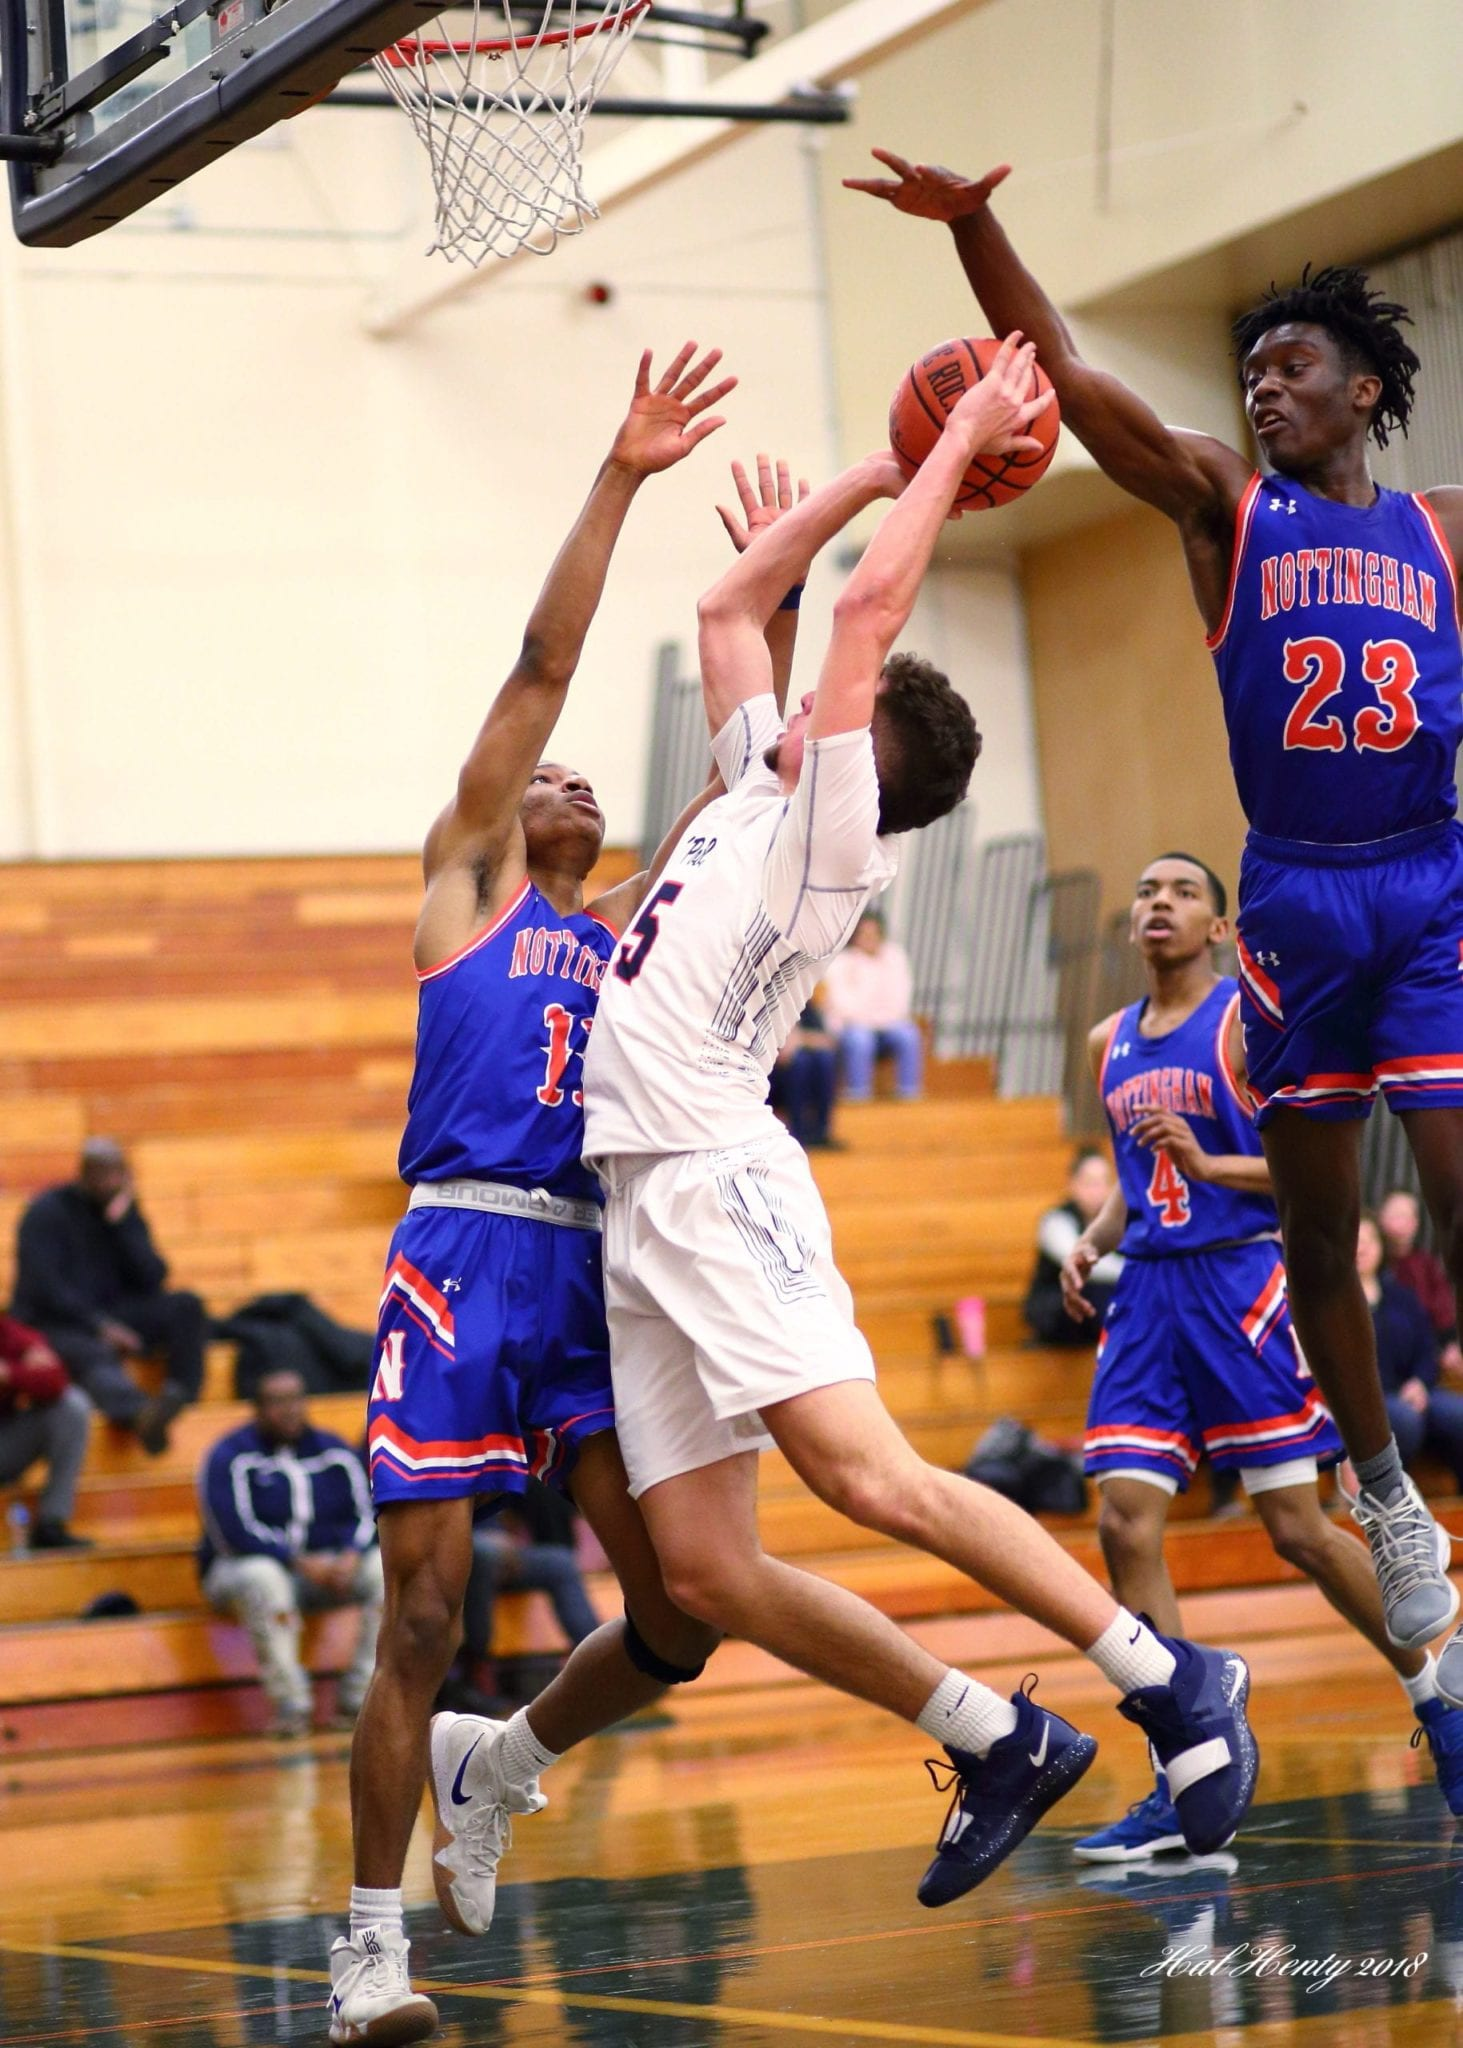 Liverpool, C-NS boys basketball sweeps league foes